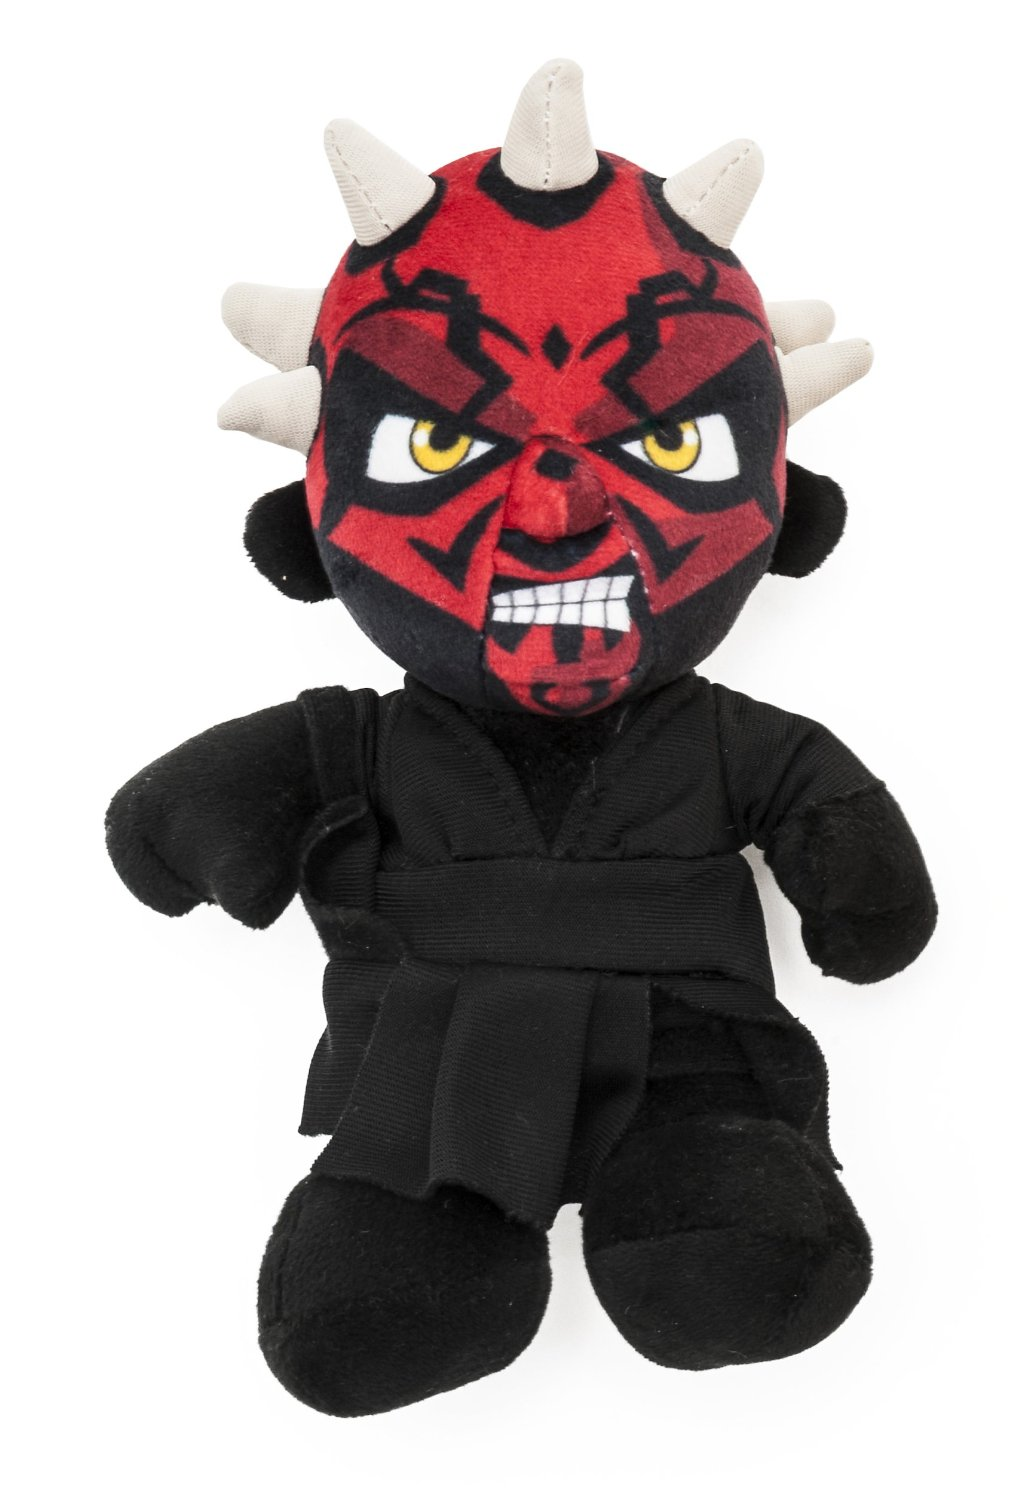 Star Wars - Peluche - Darth Maul - 17 cm